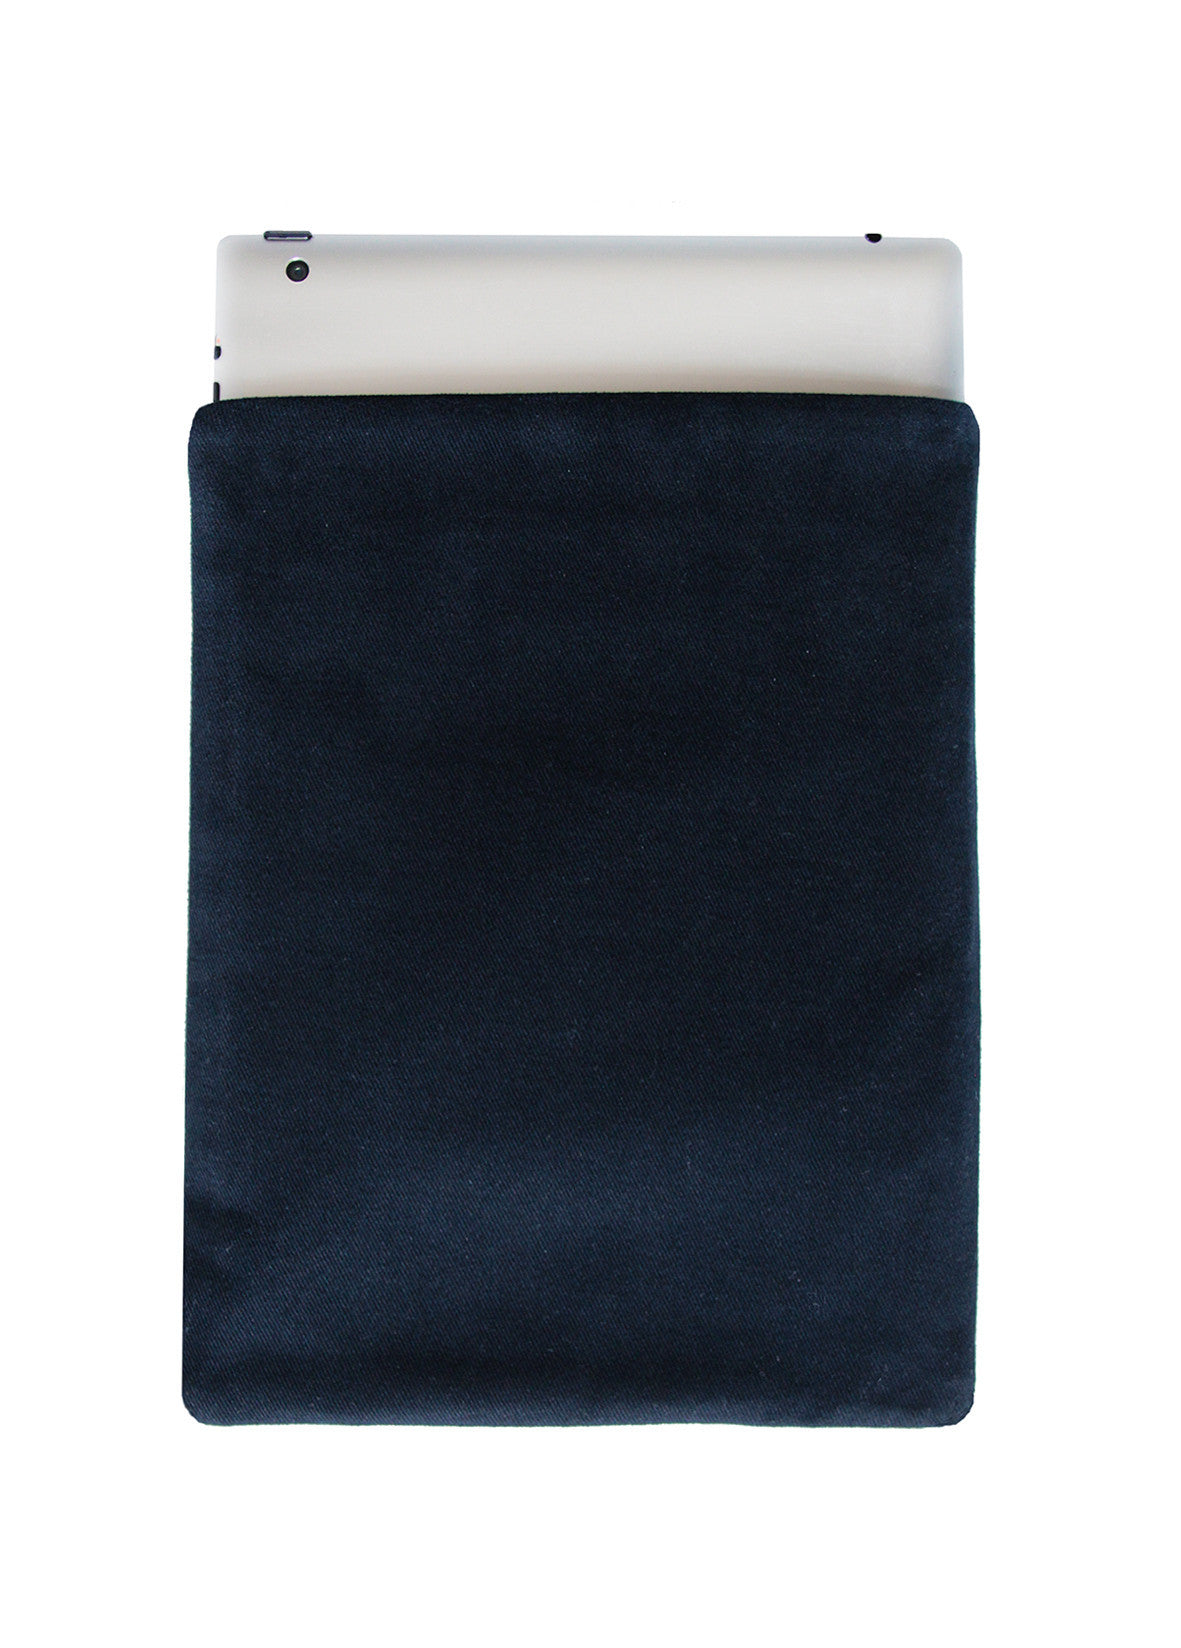 Promenade iPad Sleeve